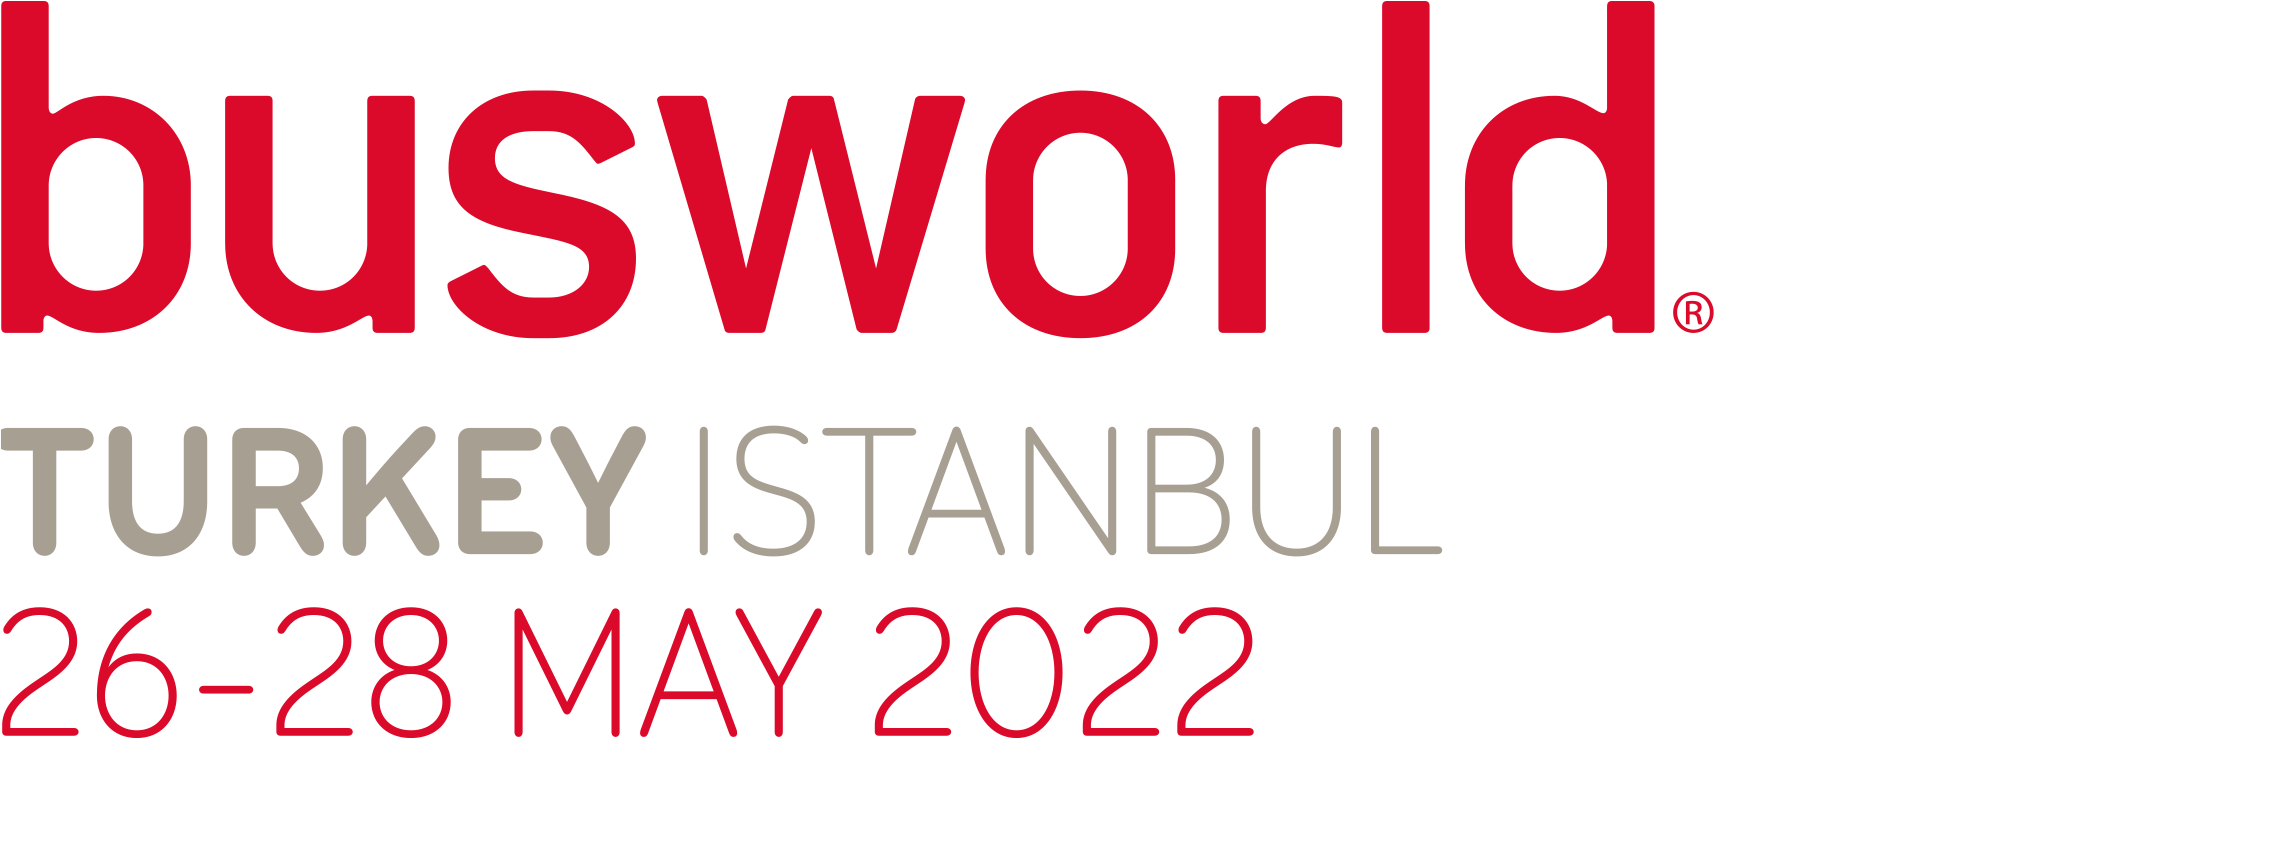 Busworld Europe 2021 logo